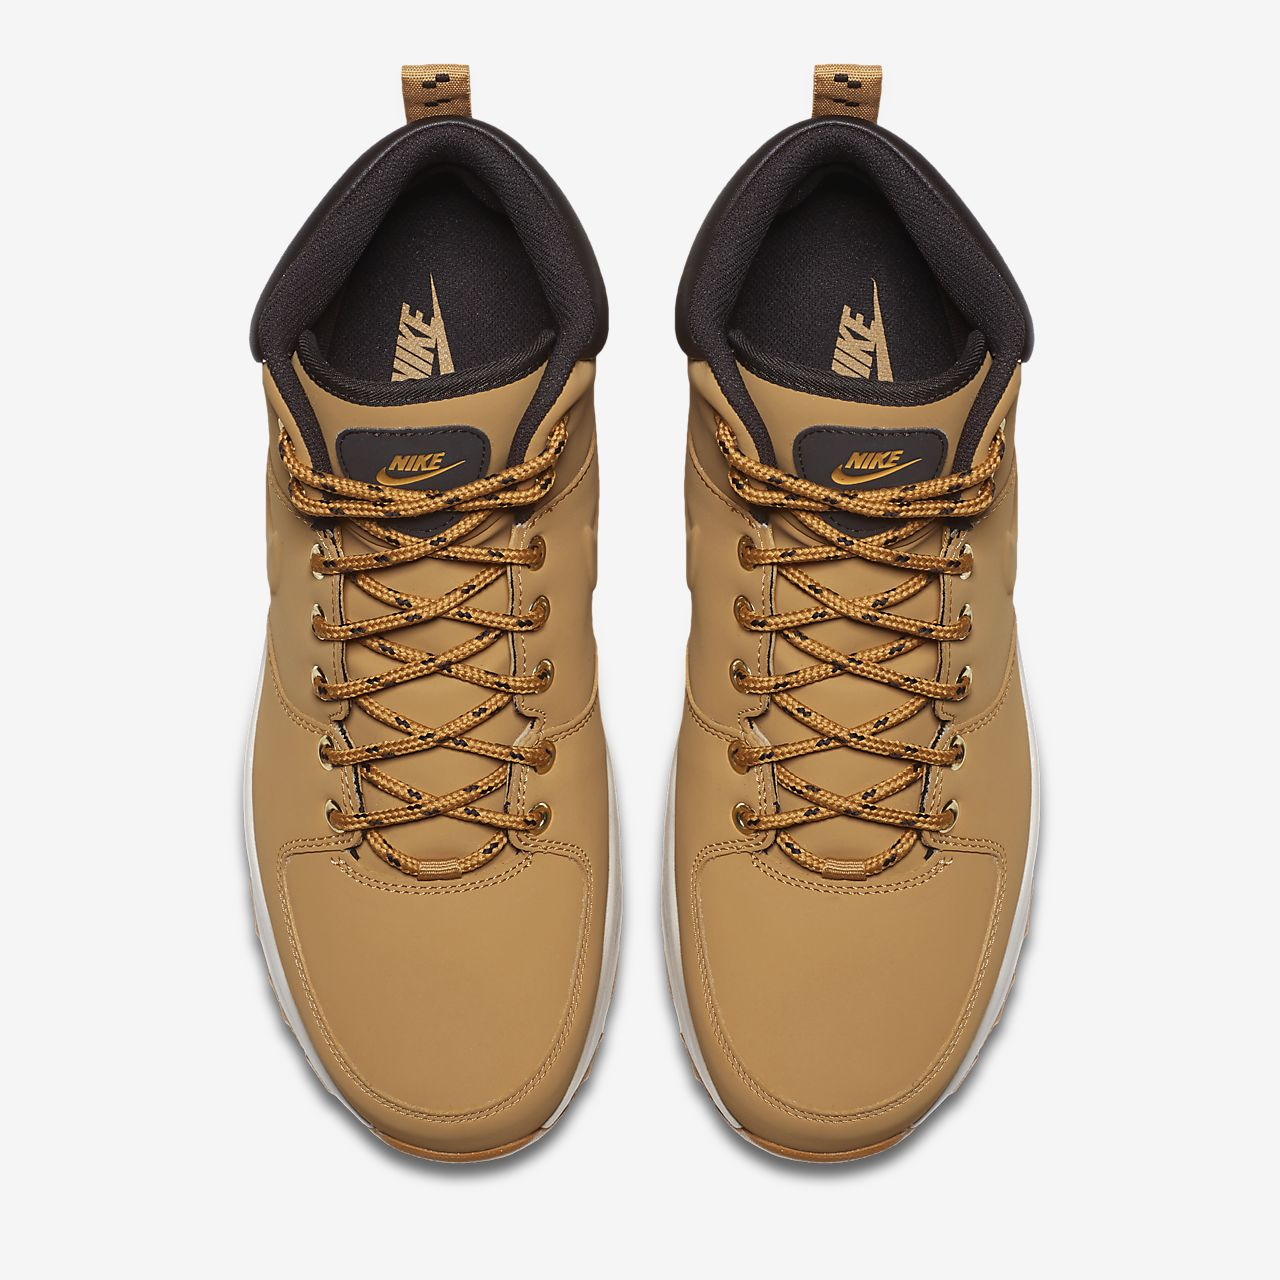 brand new 00a38 4465c Low Resolution Nike Manoa Herenboots Nike Manoa Herenboots